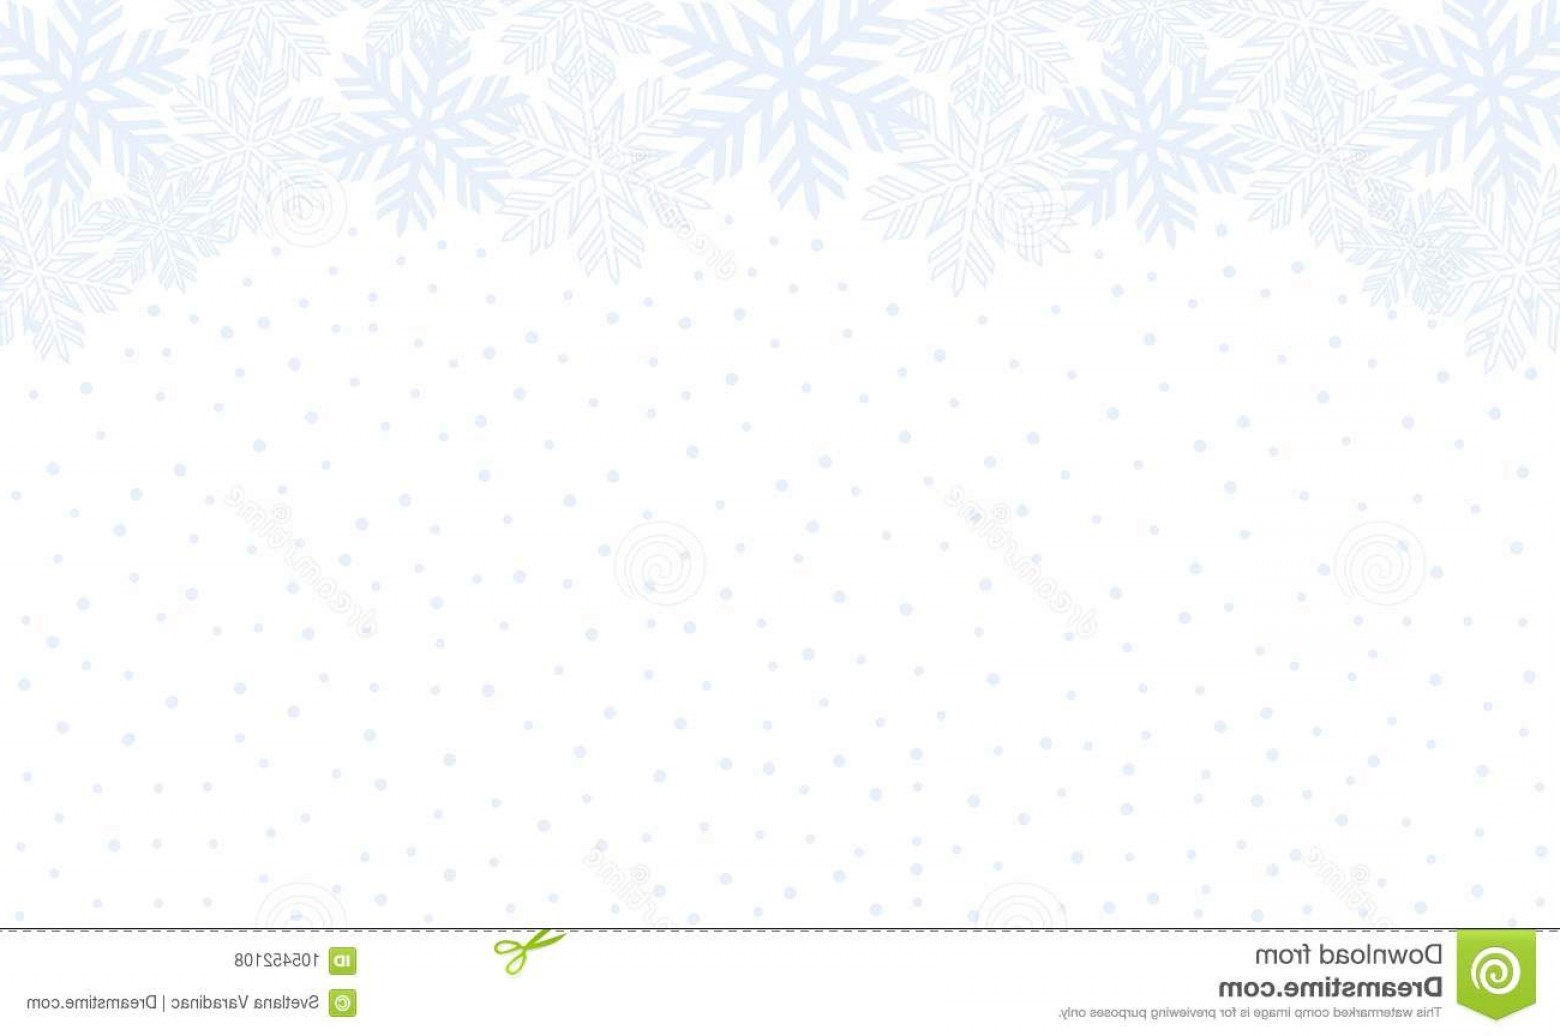 White Snowflake Vector Art: Vector Graphic Winter Patter Snowfall Background White Snowflakes Pattern Image